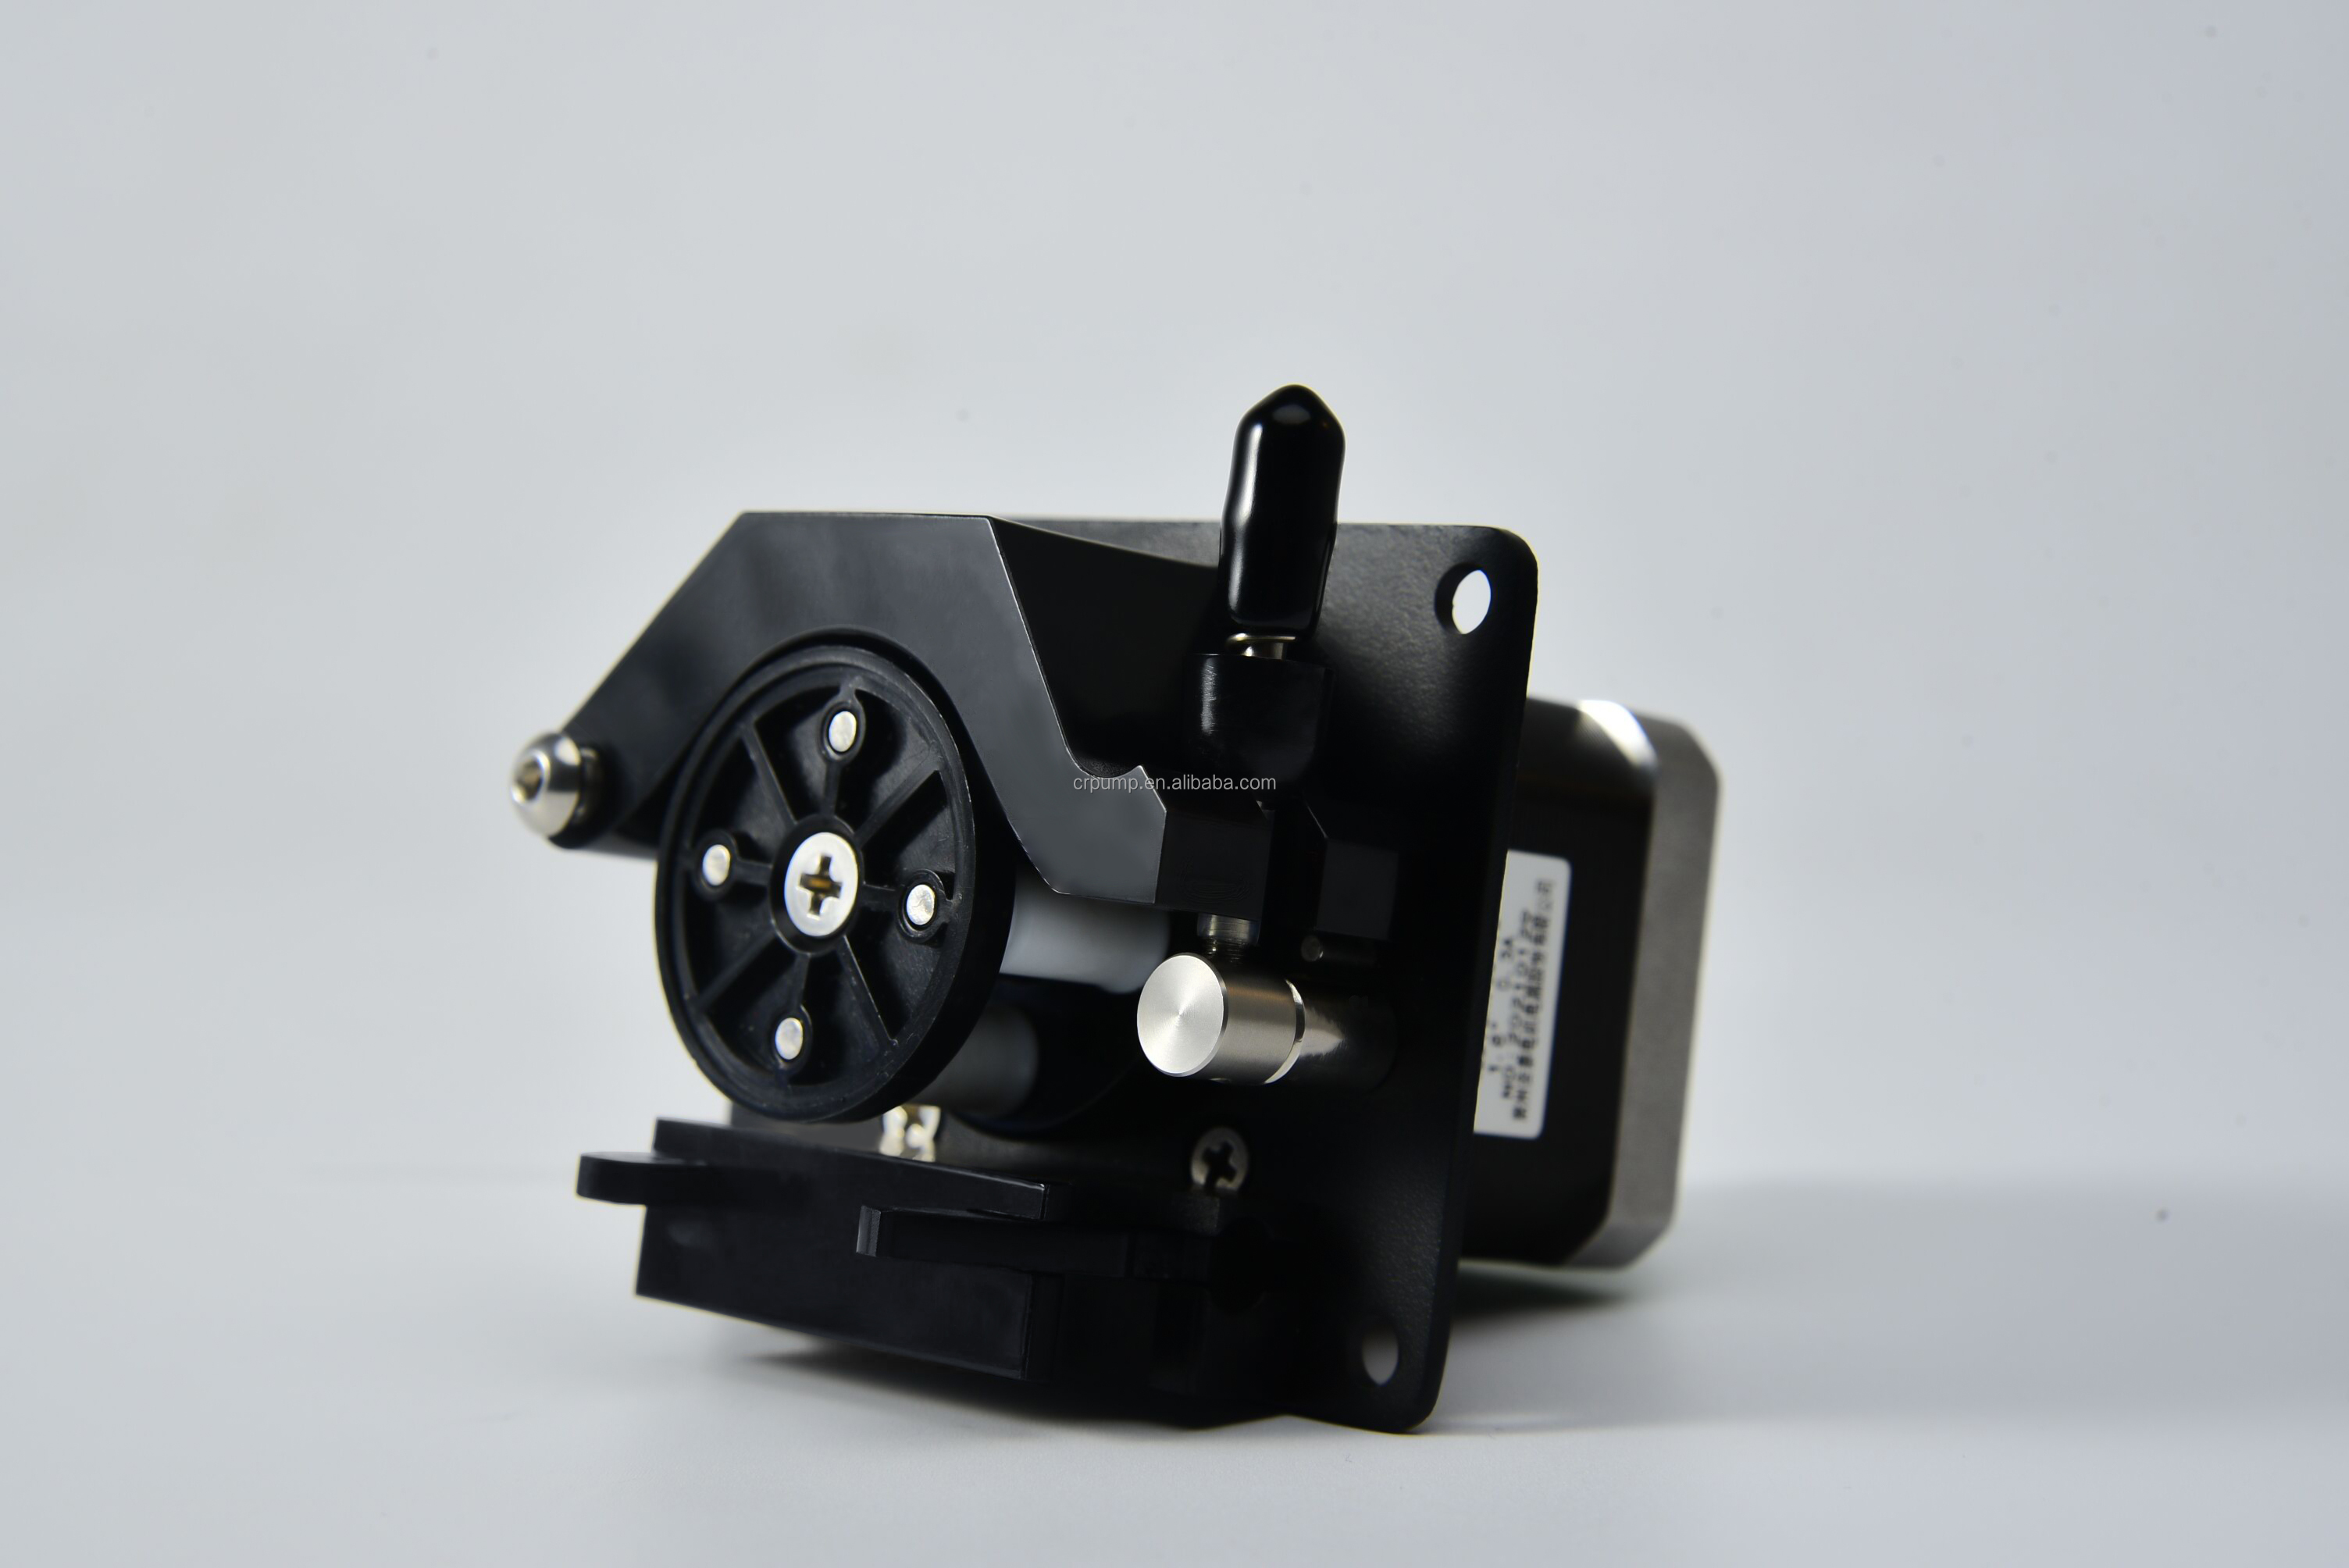 Small Micro Flow Peristaltic Pump For Analytical Instruments